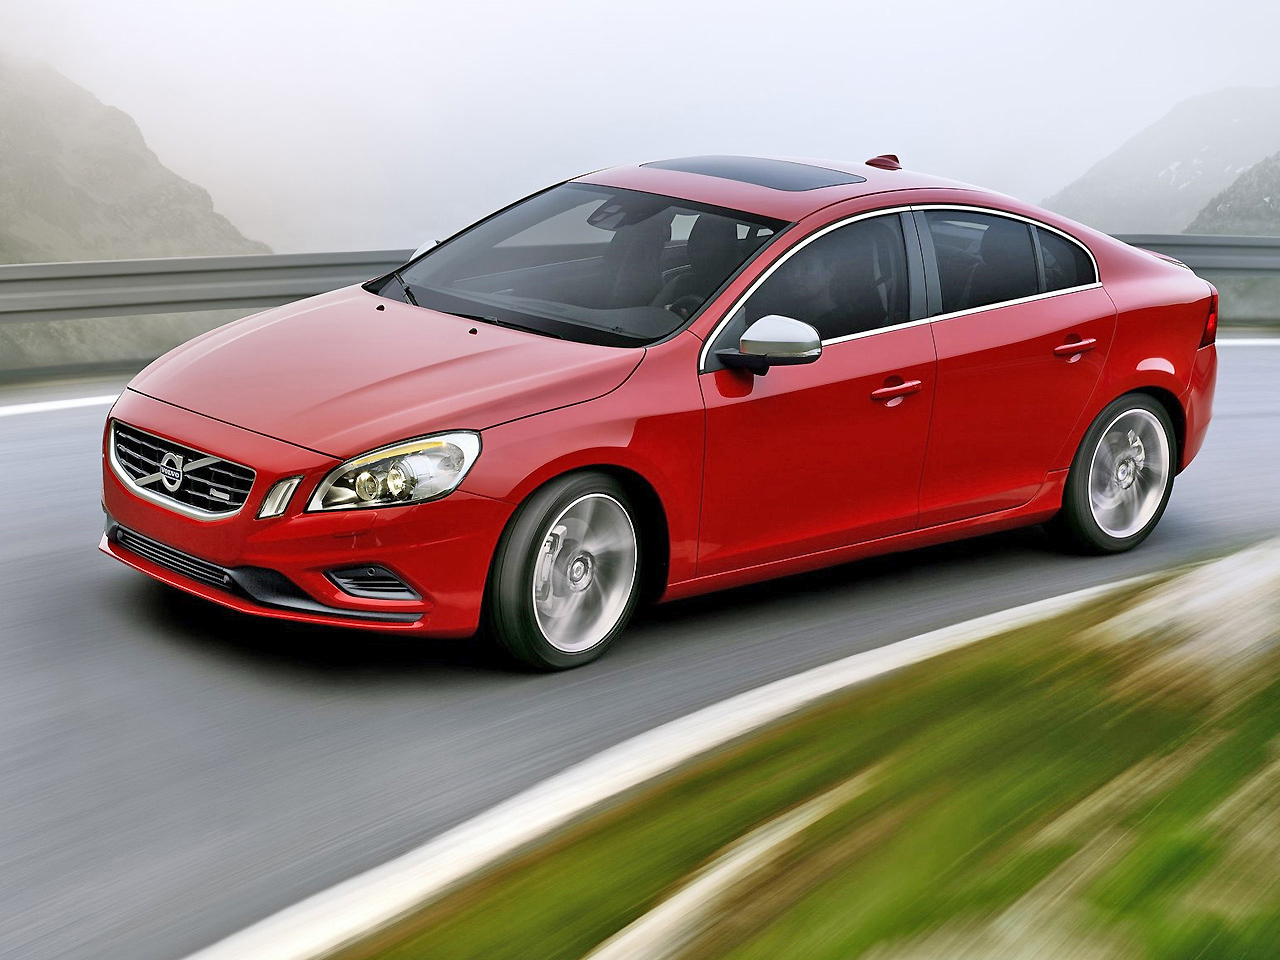 Enter any best looking car competition, and the new Volvo S60 won't be far off the podium.